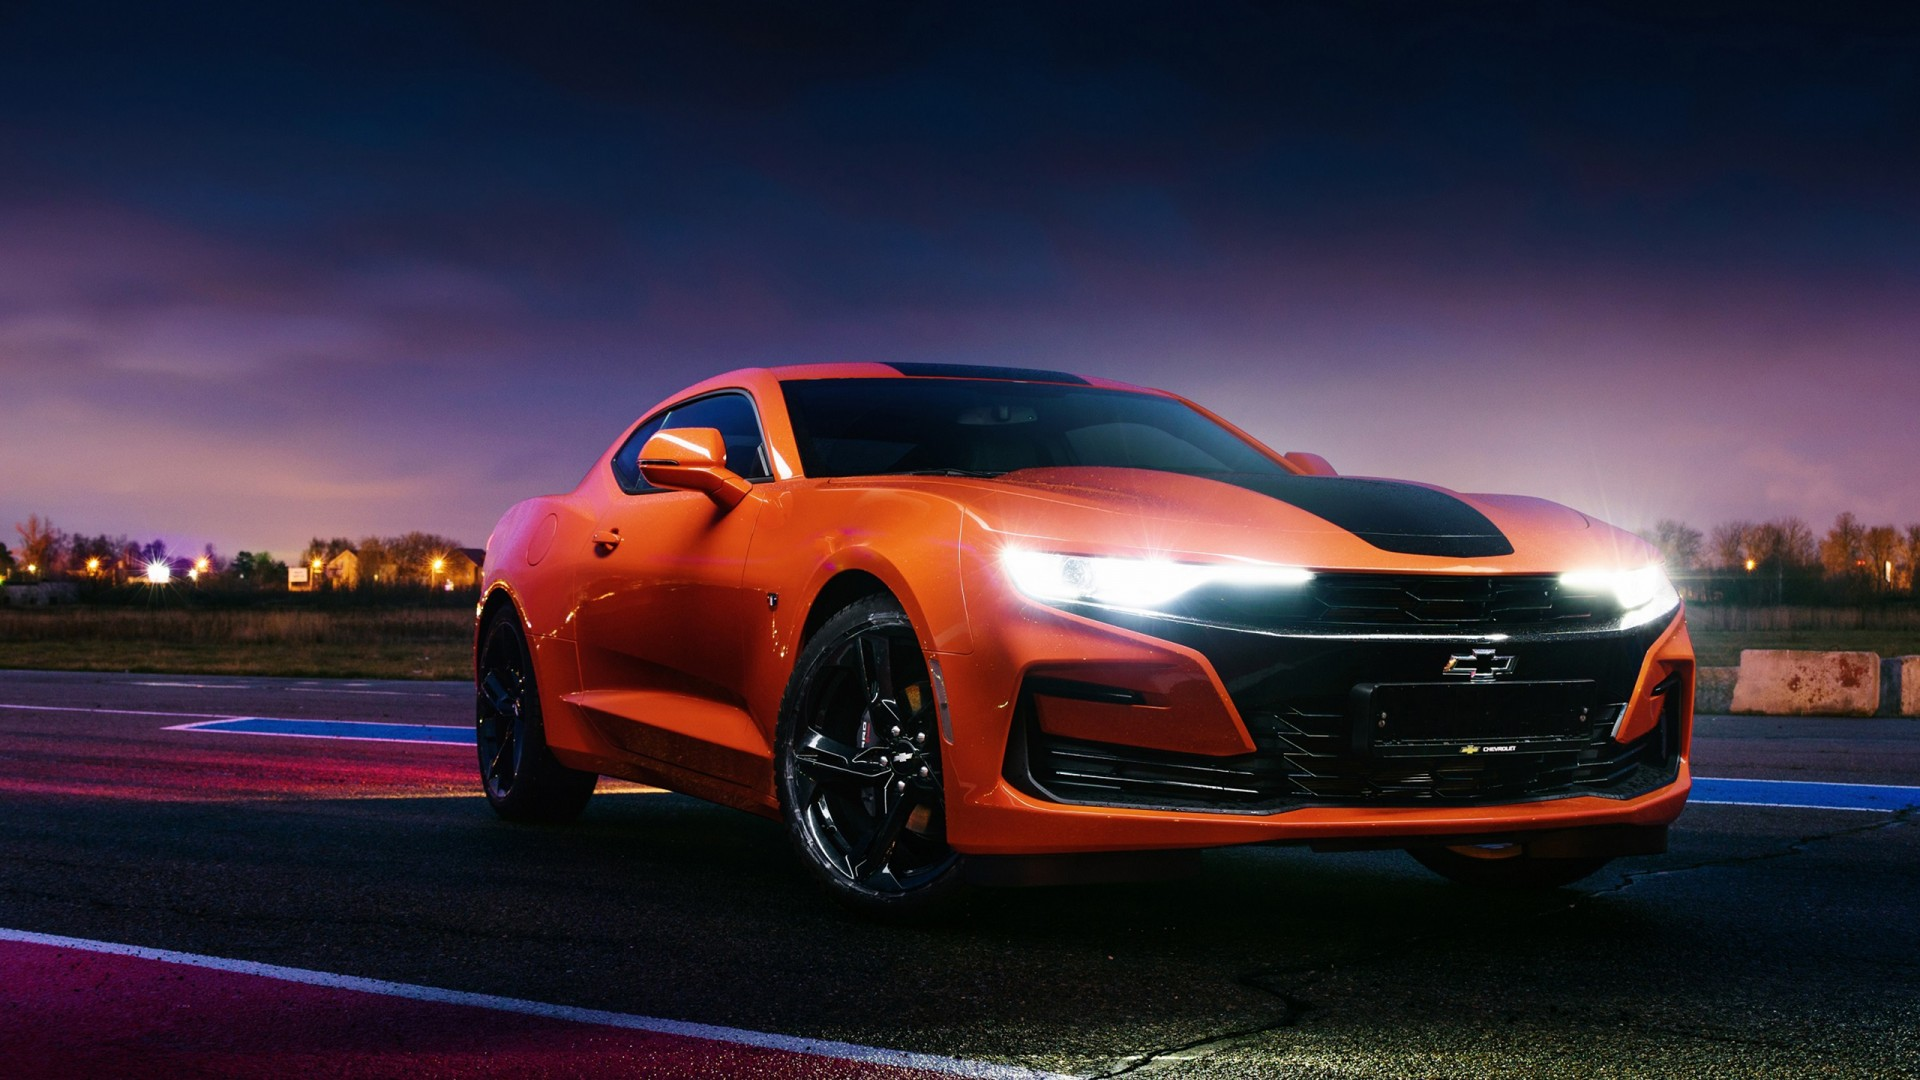 Chevrolet Camaro 2019 Wallpaper HD Car Wallpapers ID